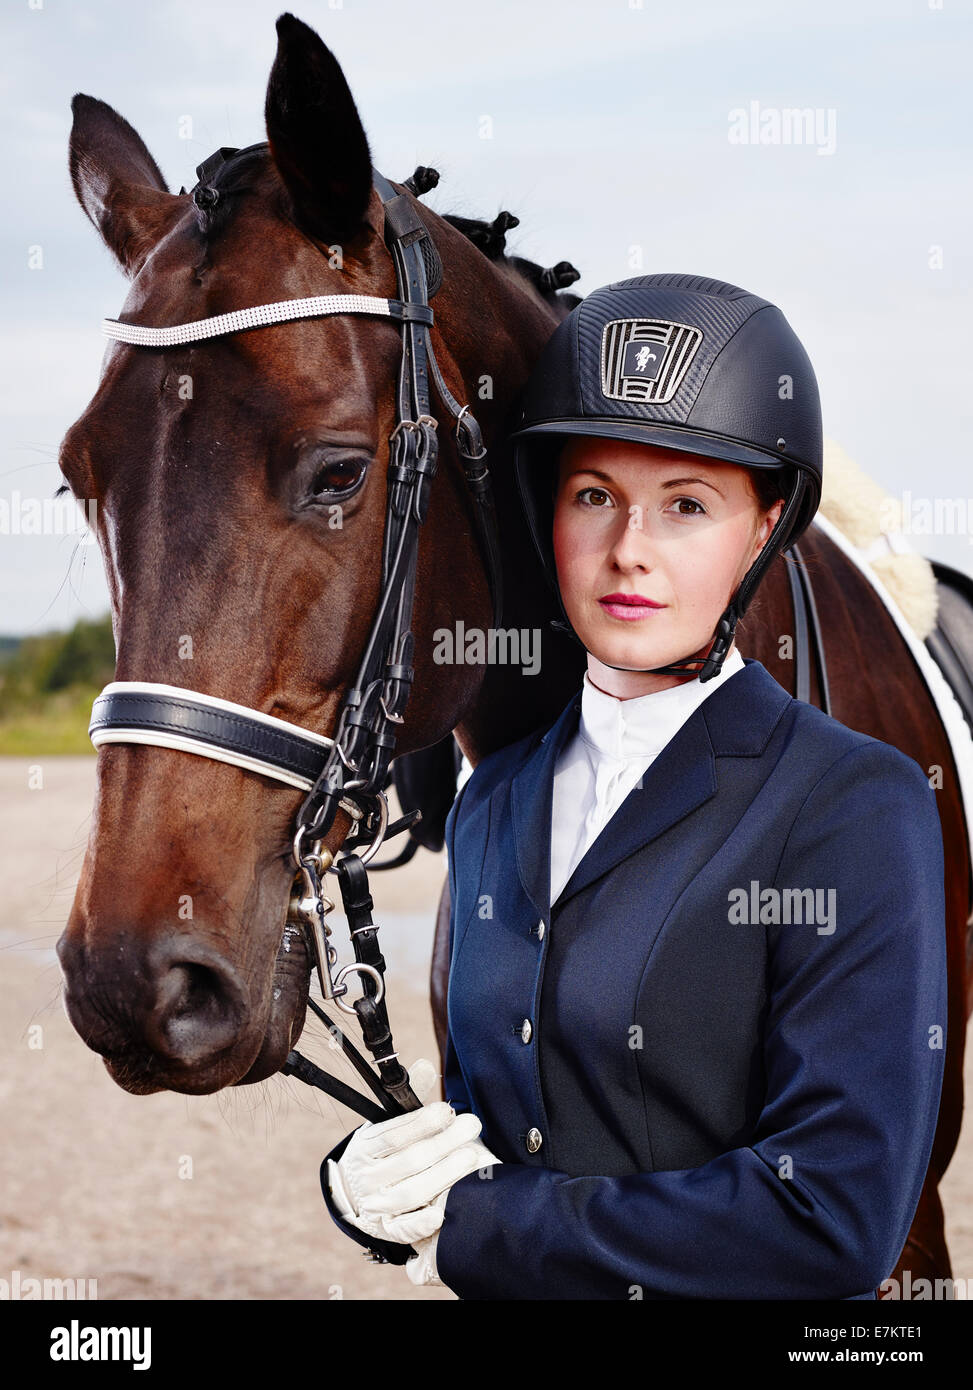 Brown horse and beautiful woman wearing horse riding apparel - Stock Image